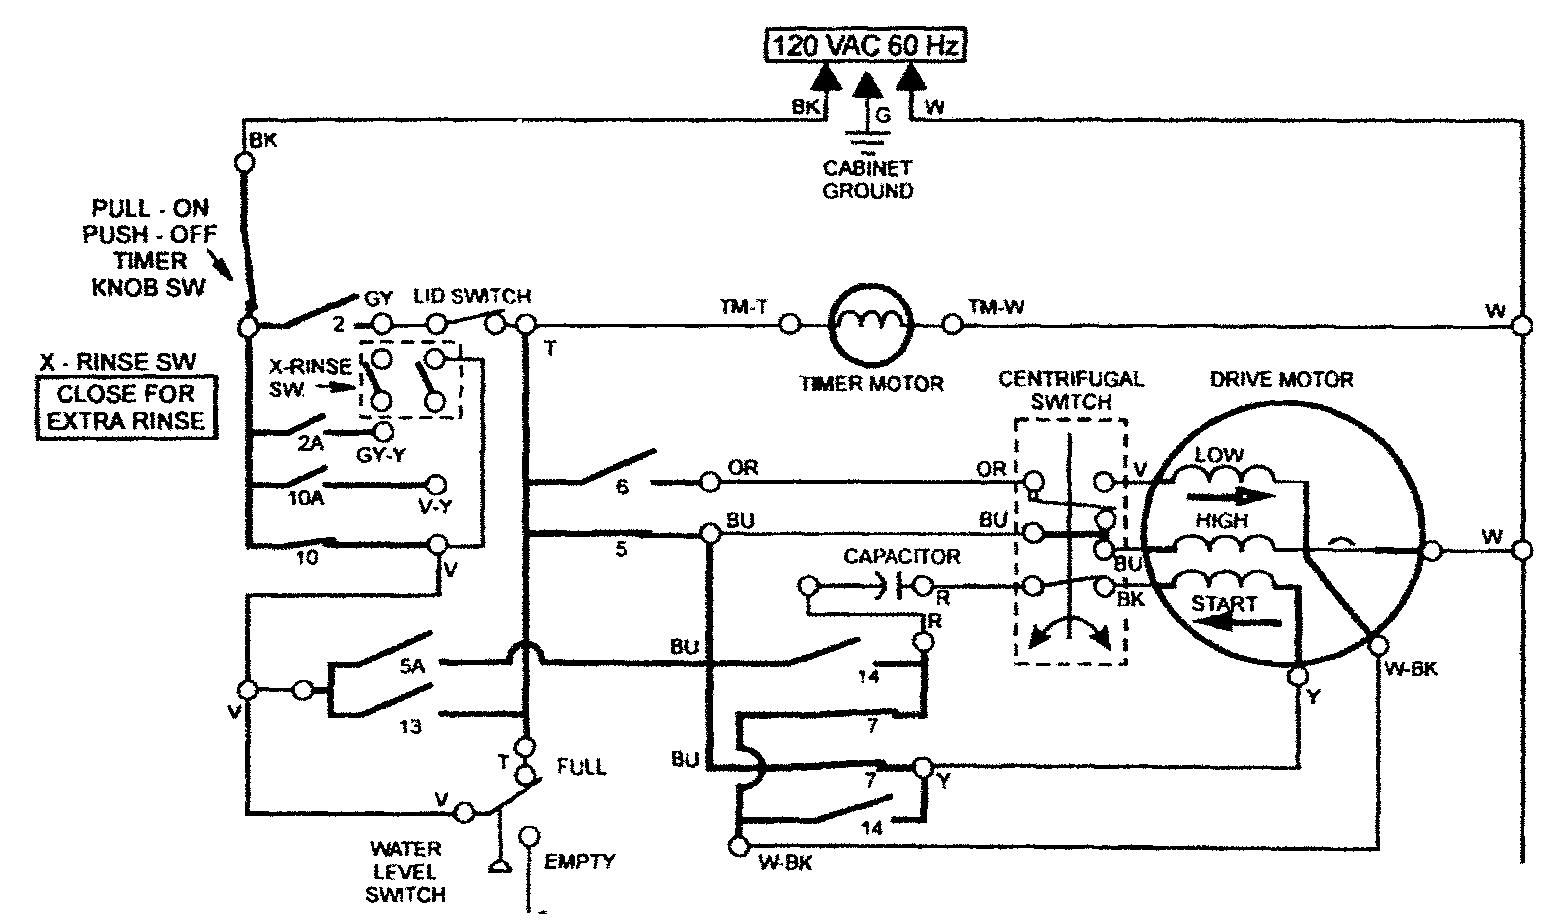 Wiring Diagram Of Washing Machine - bookingritzcarlton.info | Washing  machine motor, Washing machine, Old washing machinePinterest